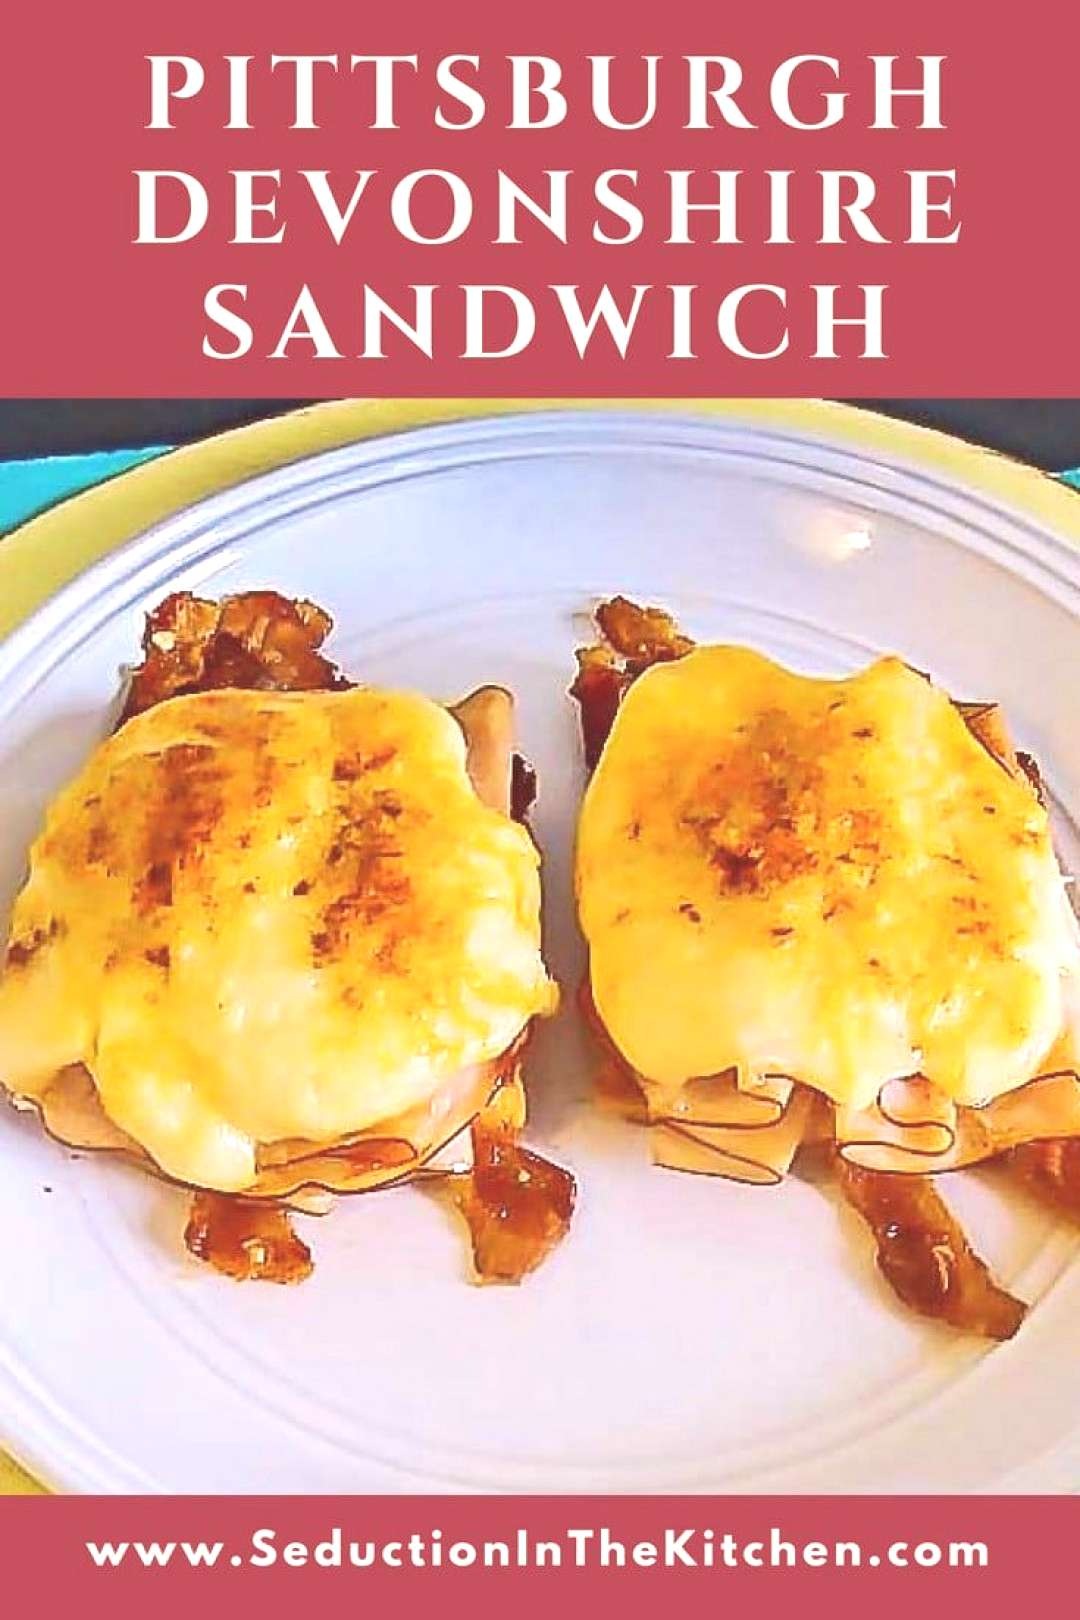 Pittsburgh Devonshire Sandwich is an open face turkey sandwich that is part of the Pittsburgh sandw